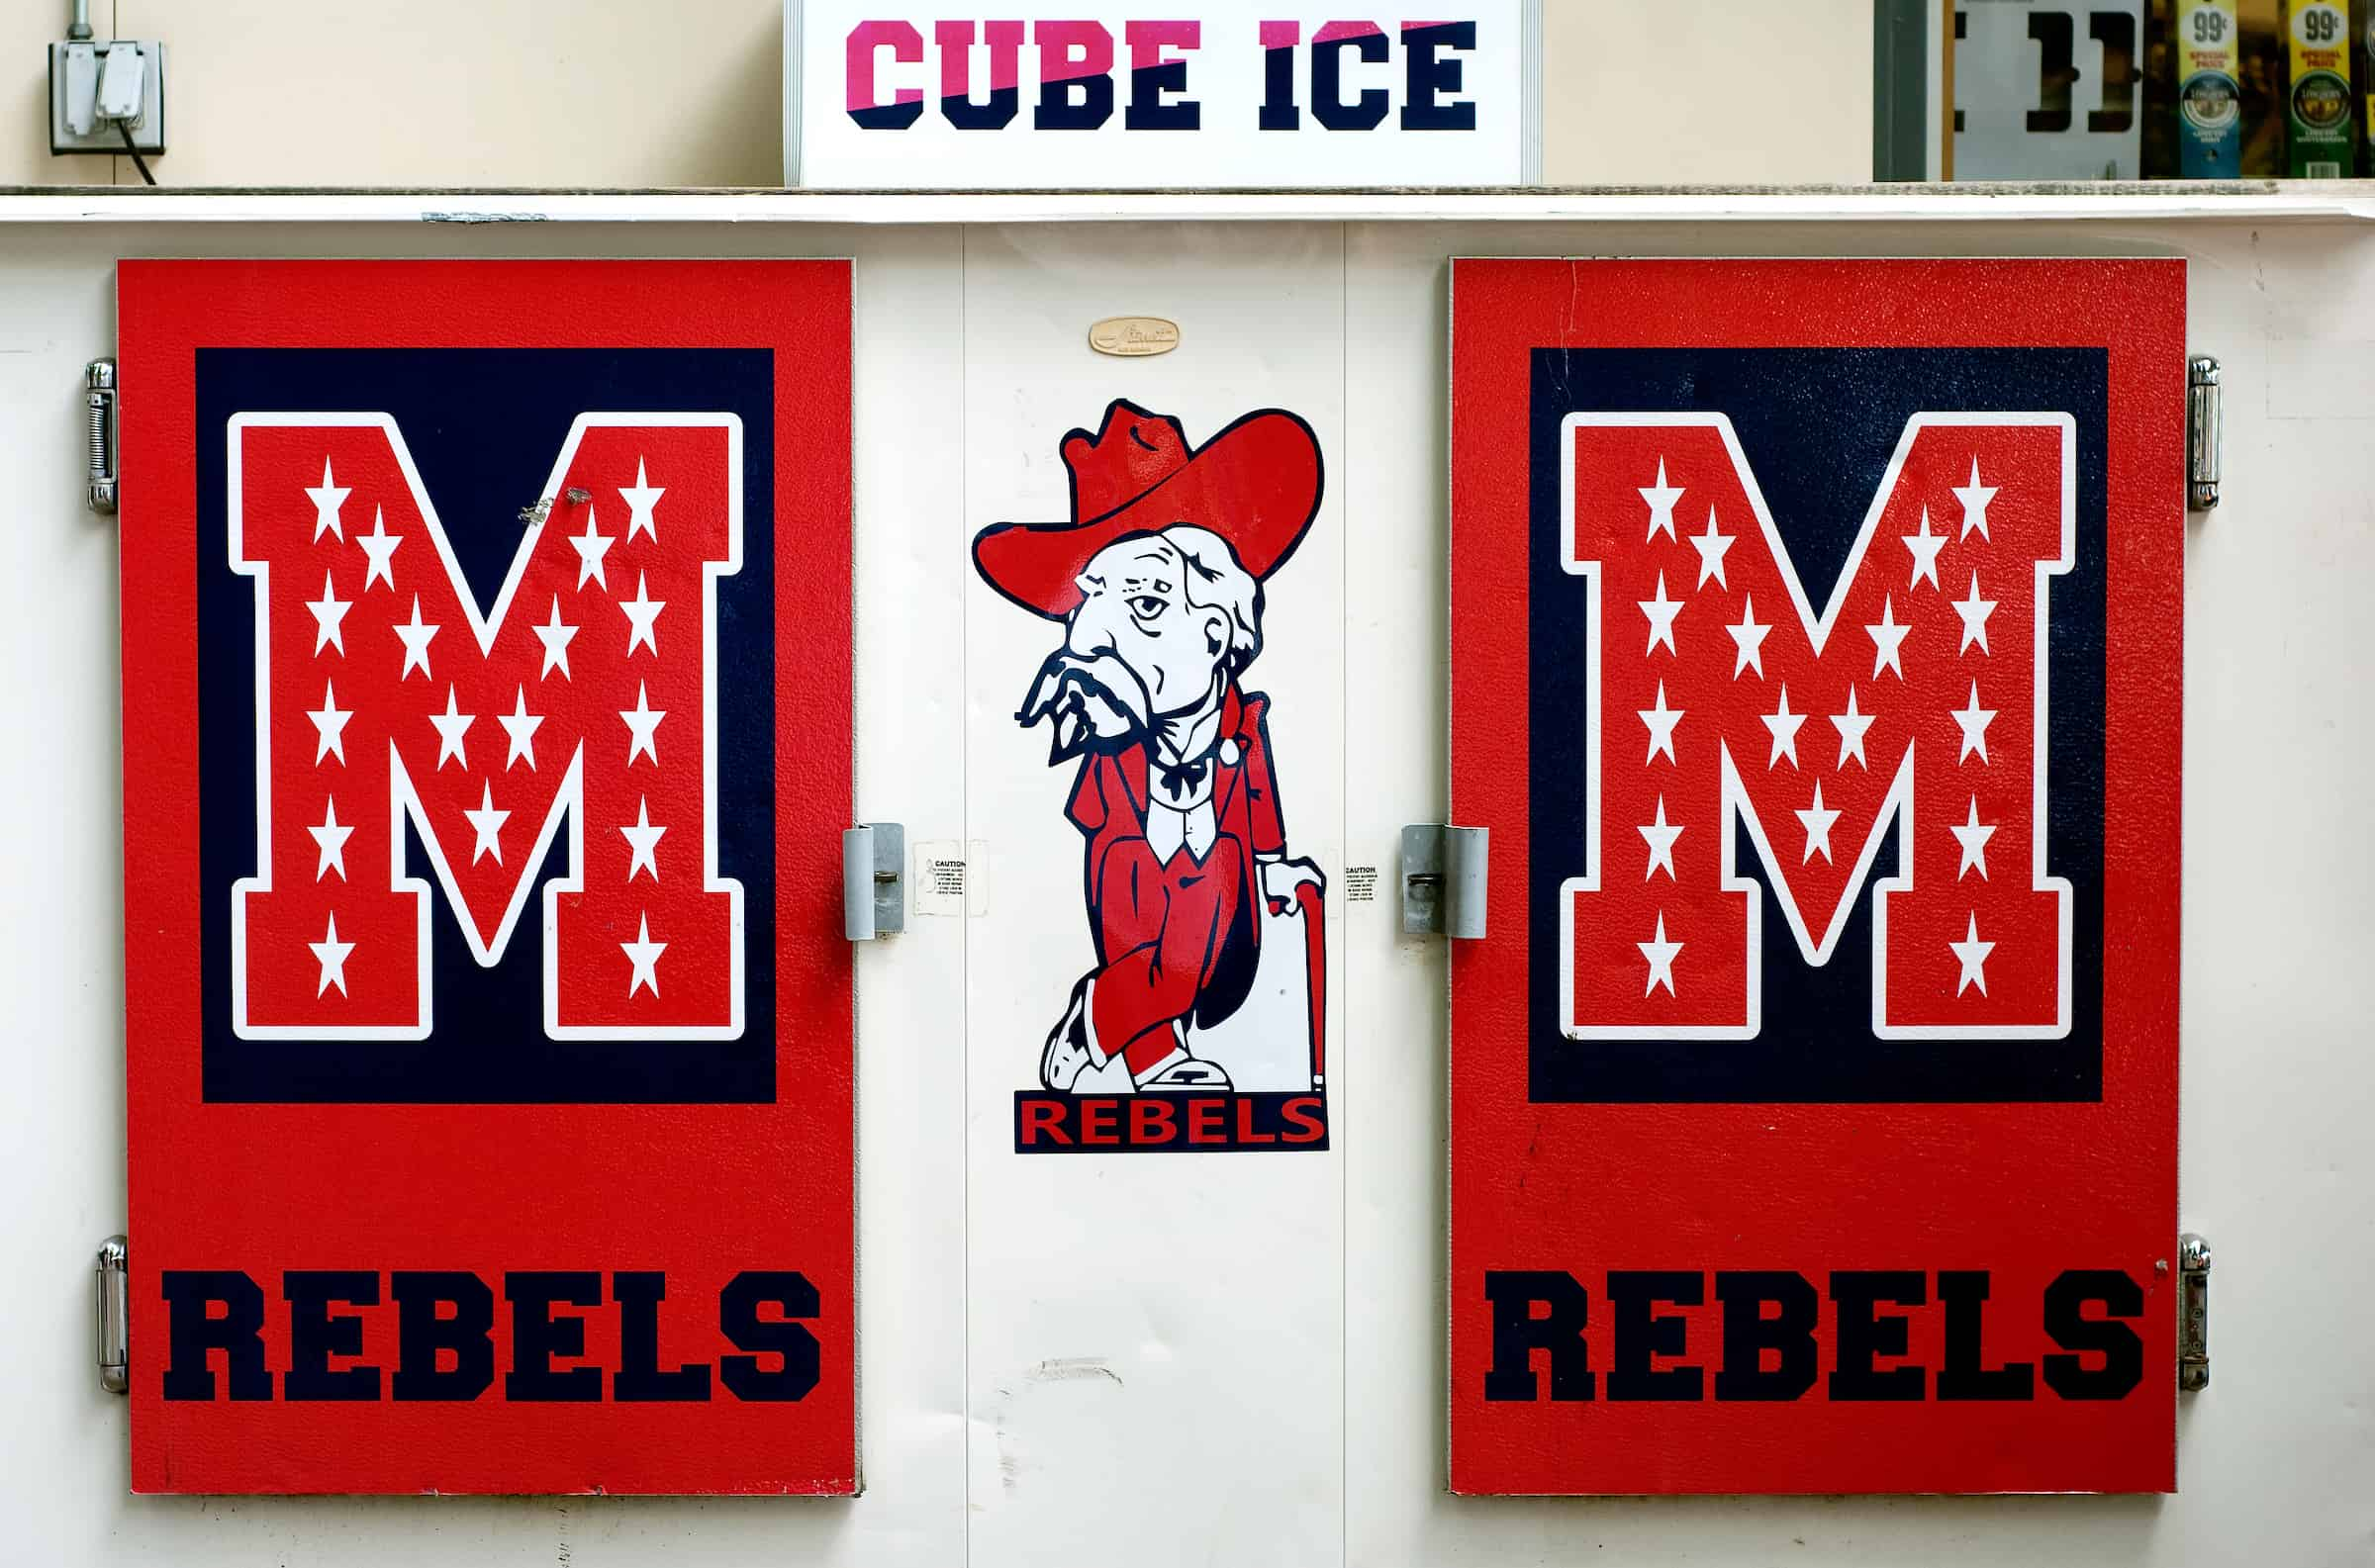 University of Mississippi Rebels sign